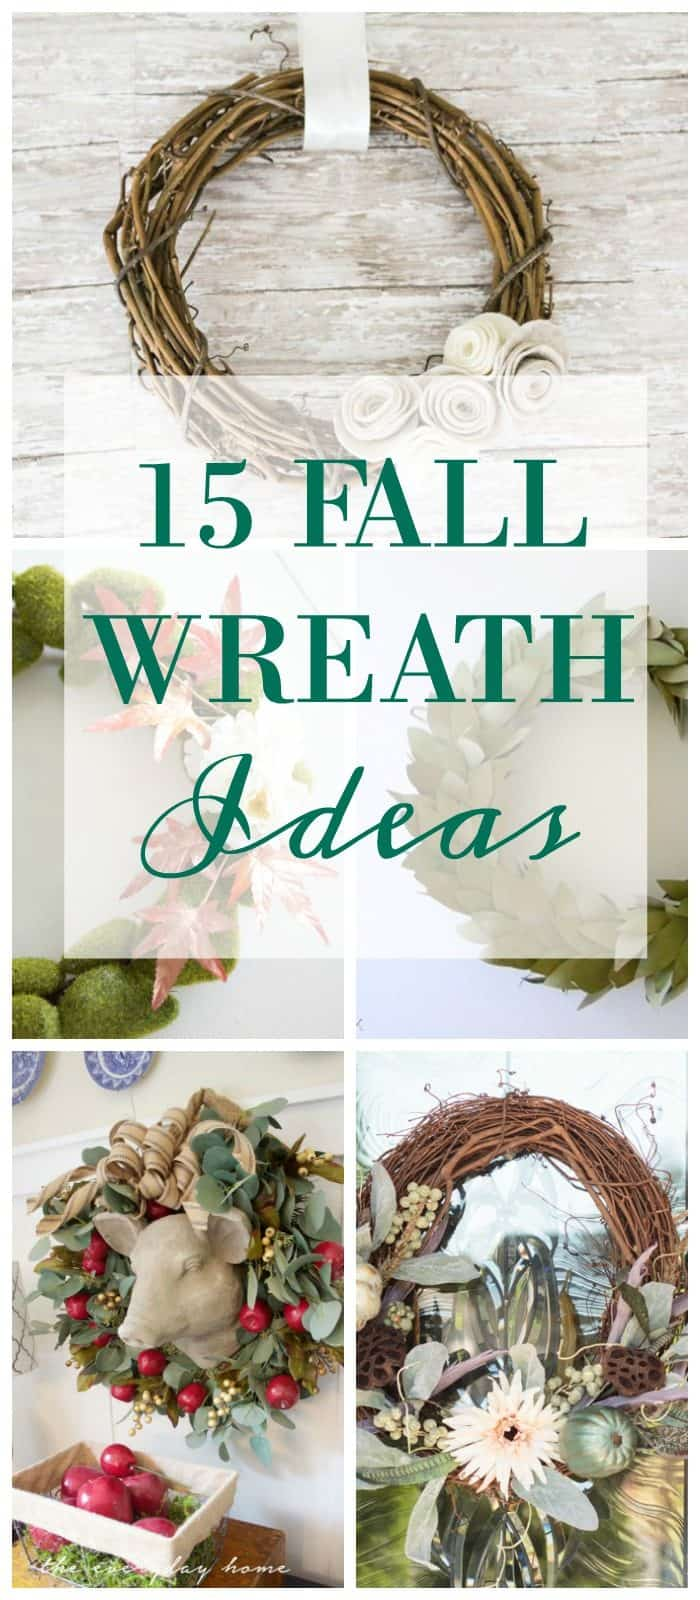 15 Fall Wreath Ideas